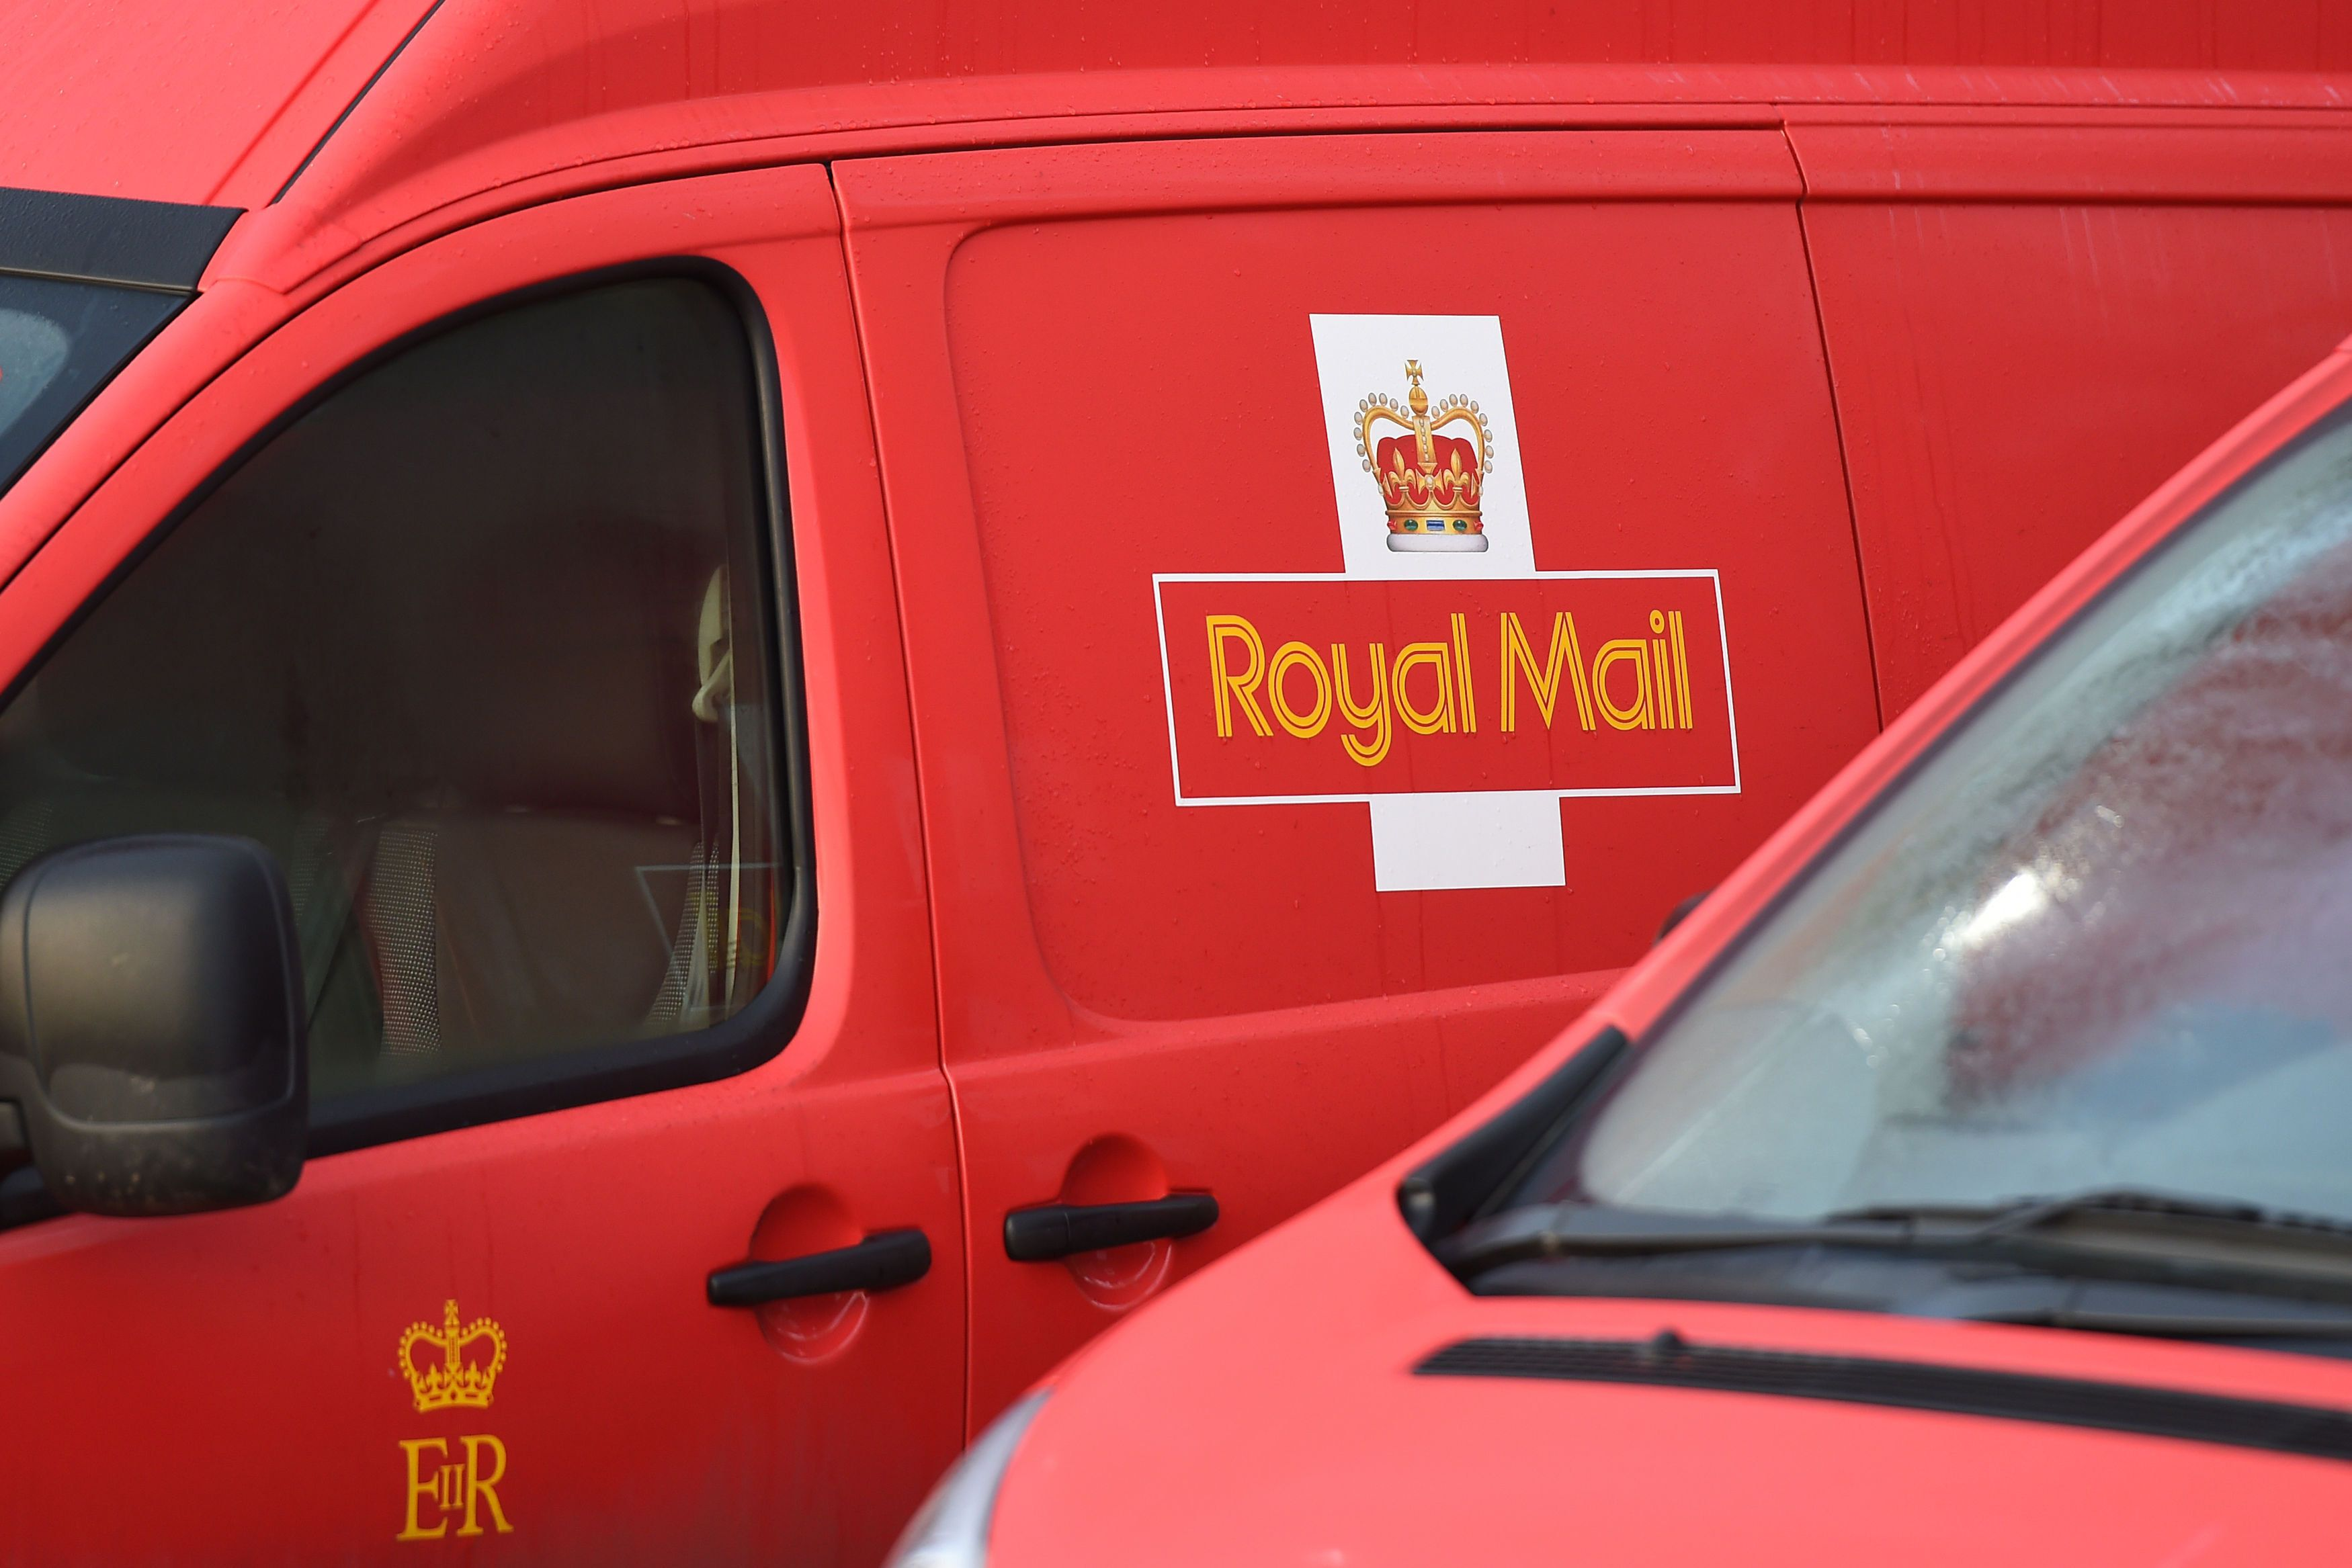 DB scheme closure results in Royal Mail strike vote